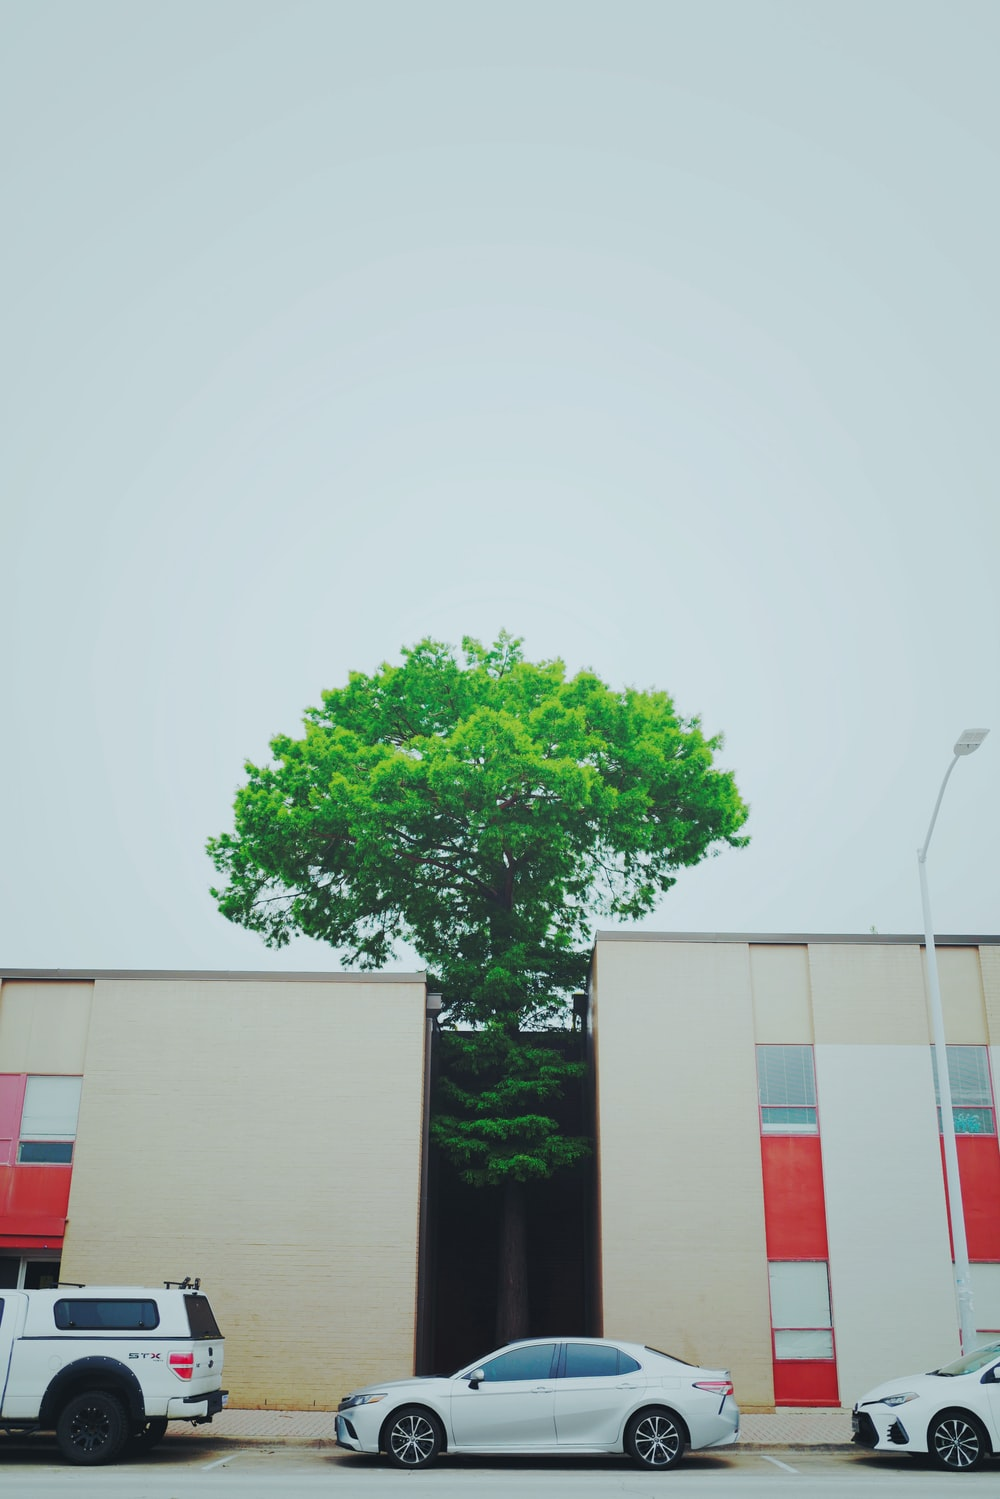 green leaf tree in between two brown building during daytime